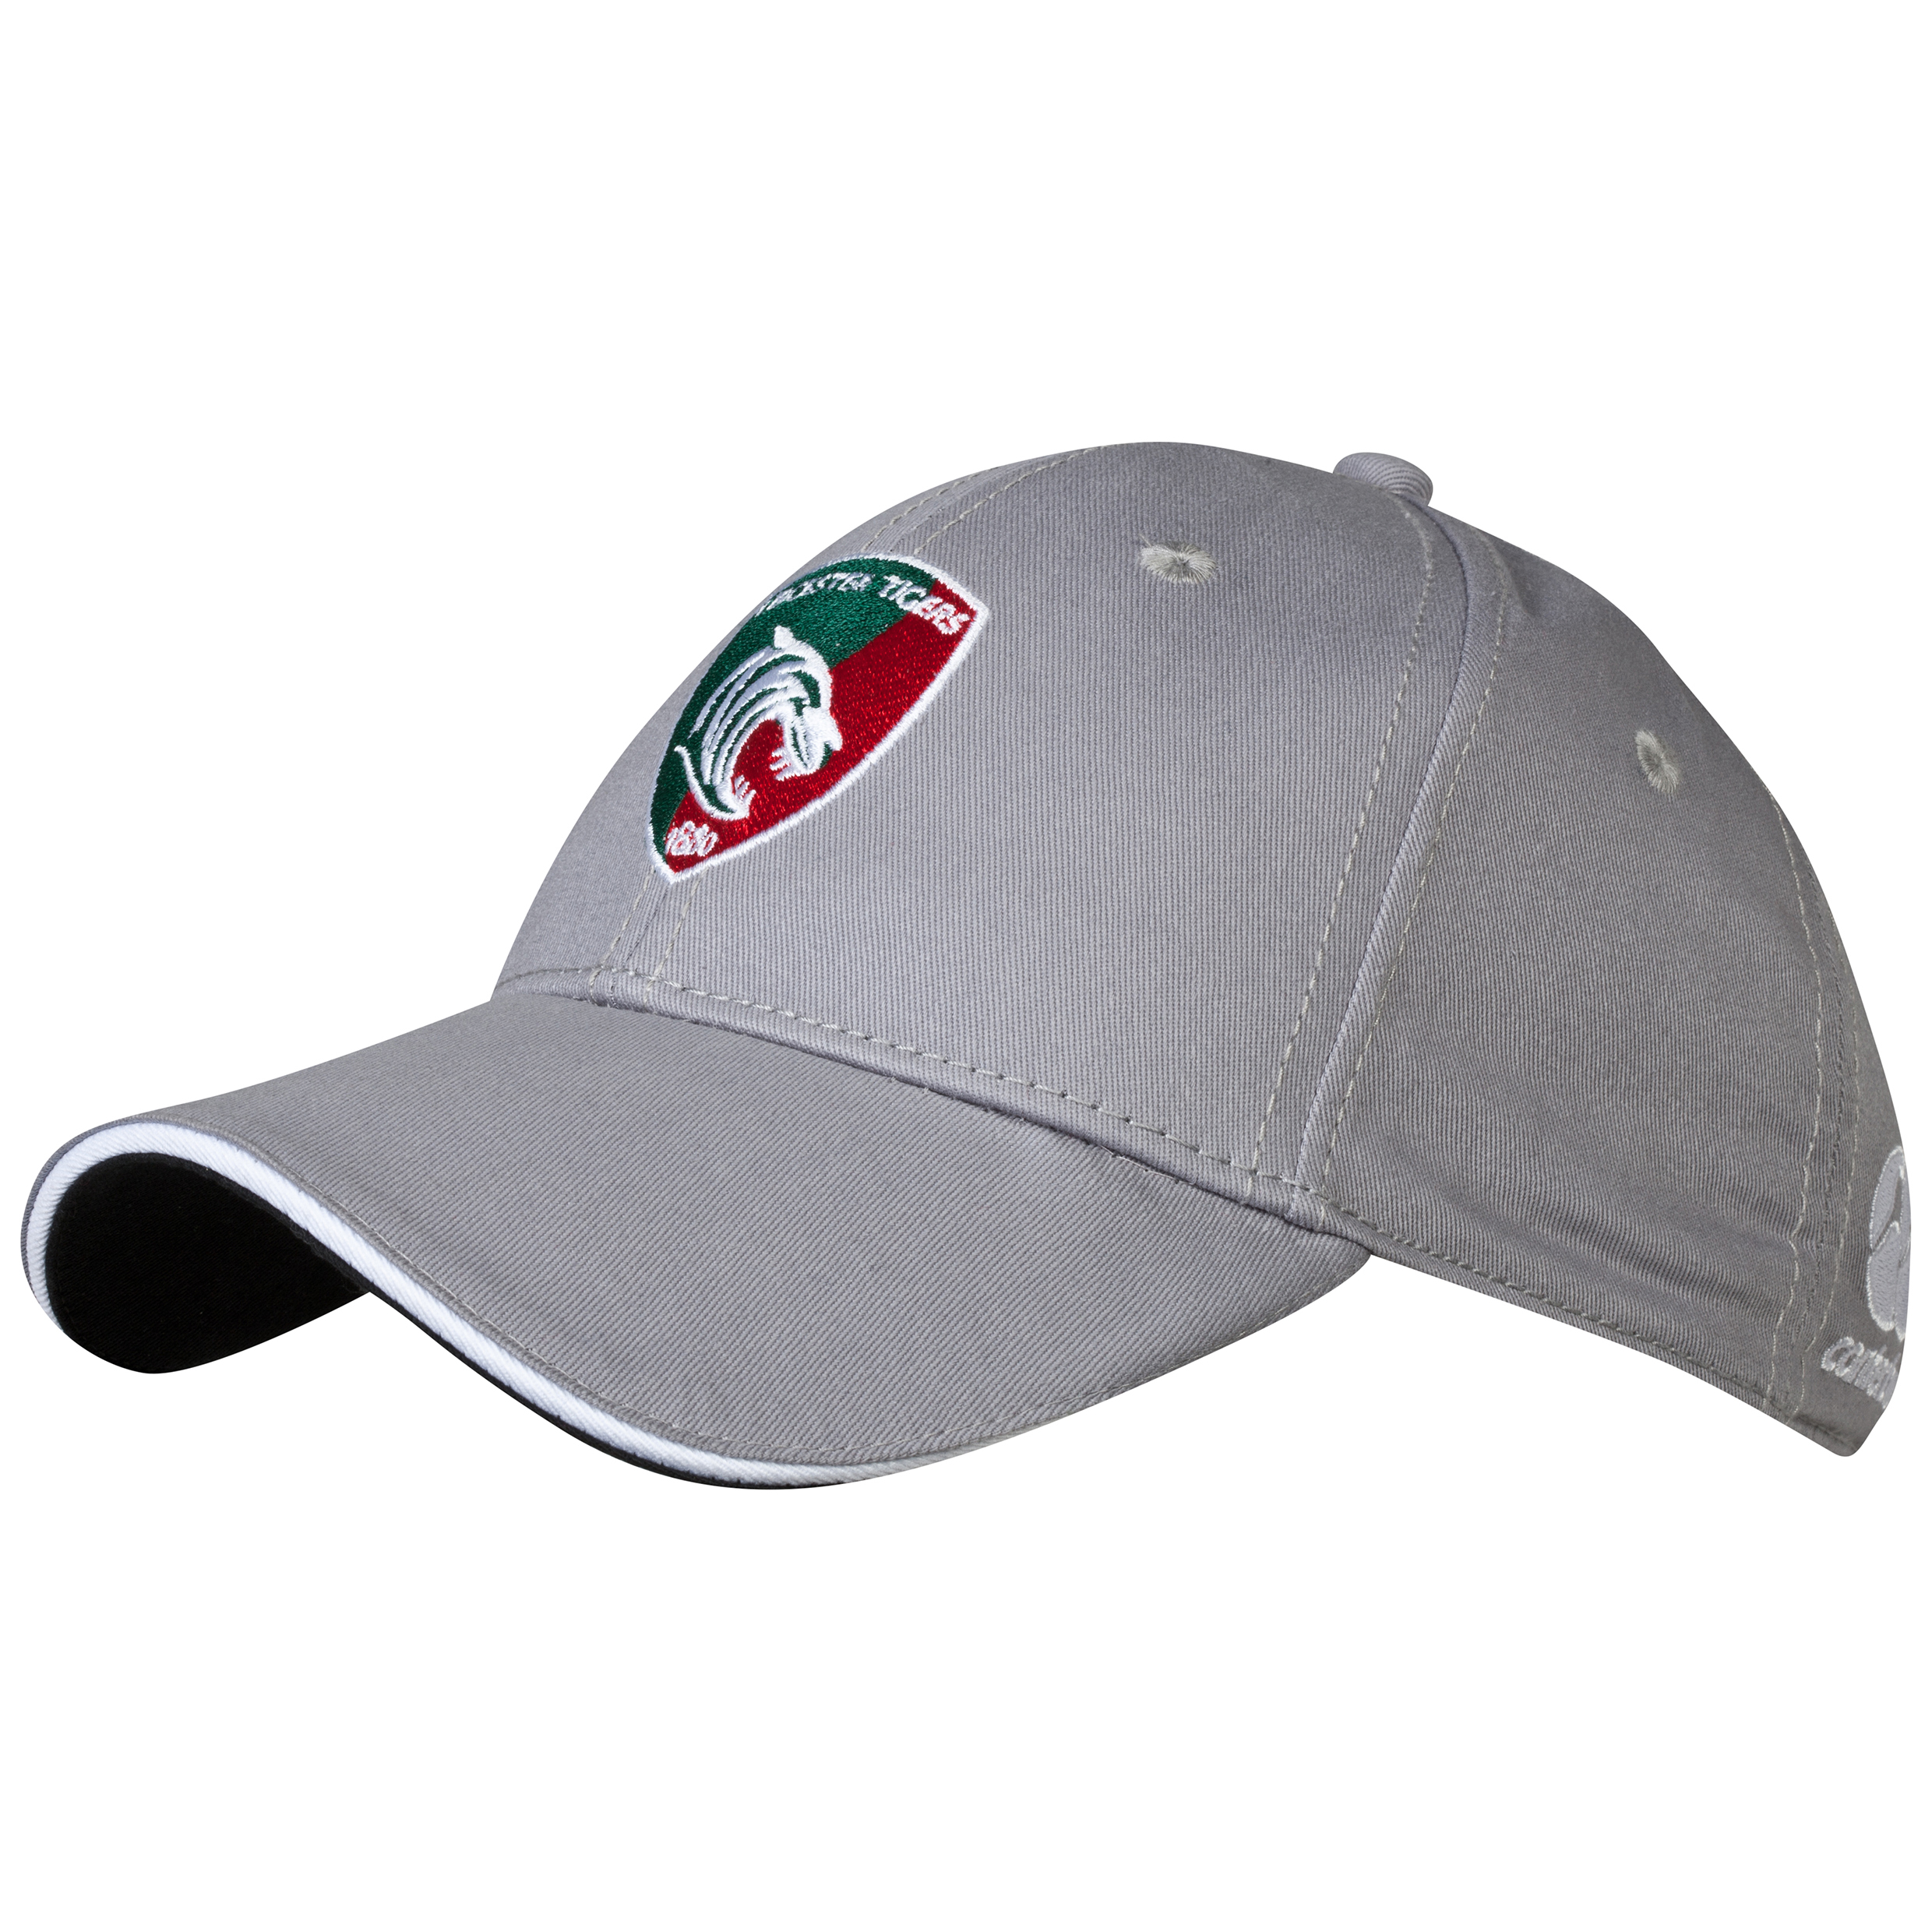 Leicester Tigers Cotton Drill Graphic Cap - fitted Grey